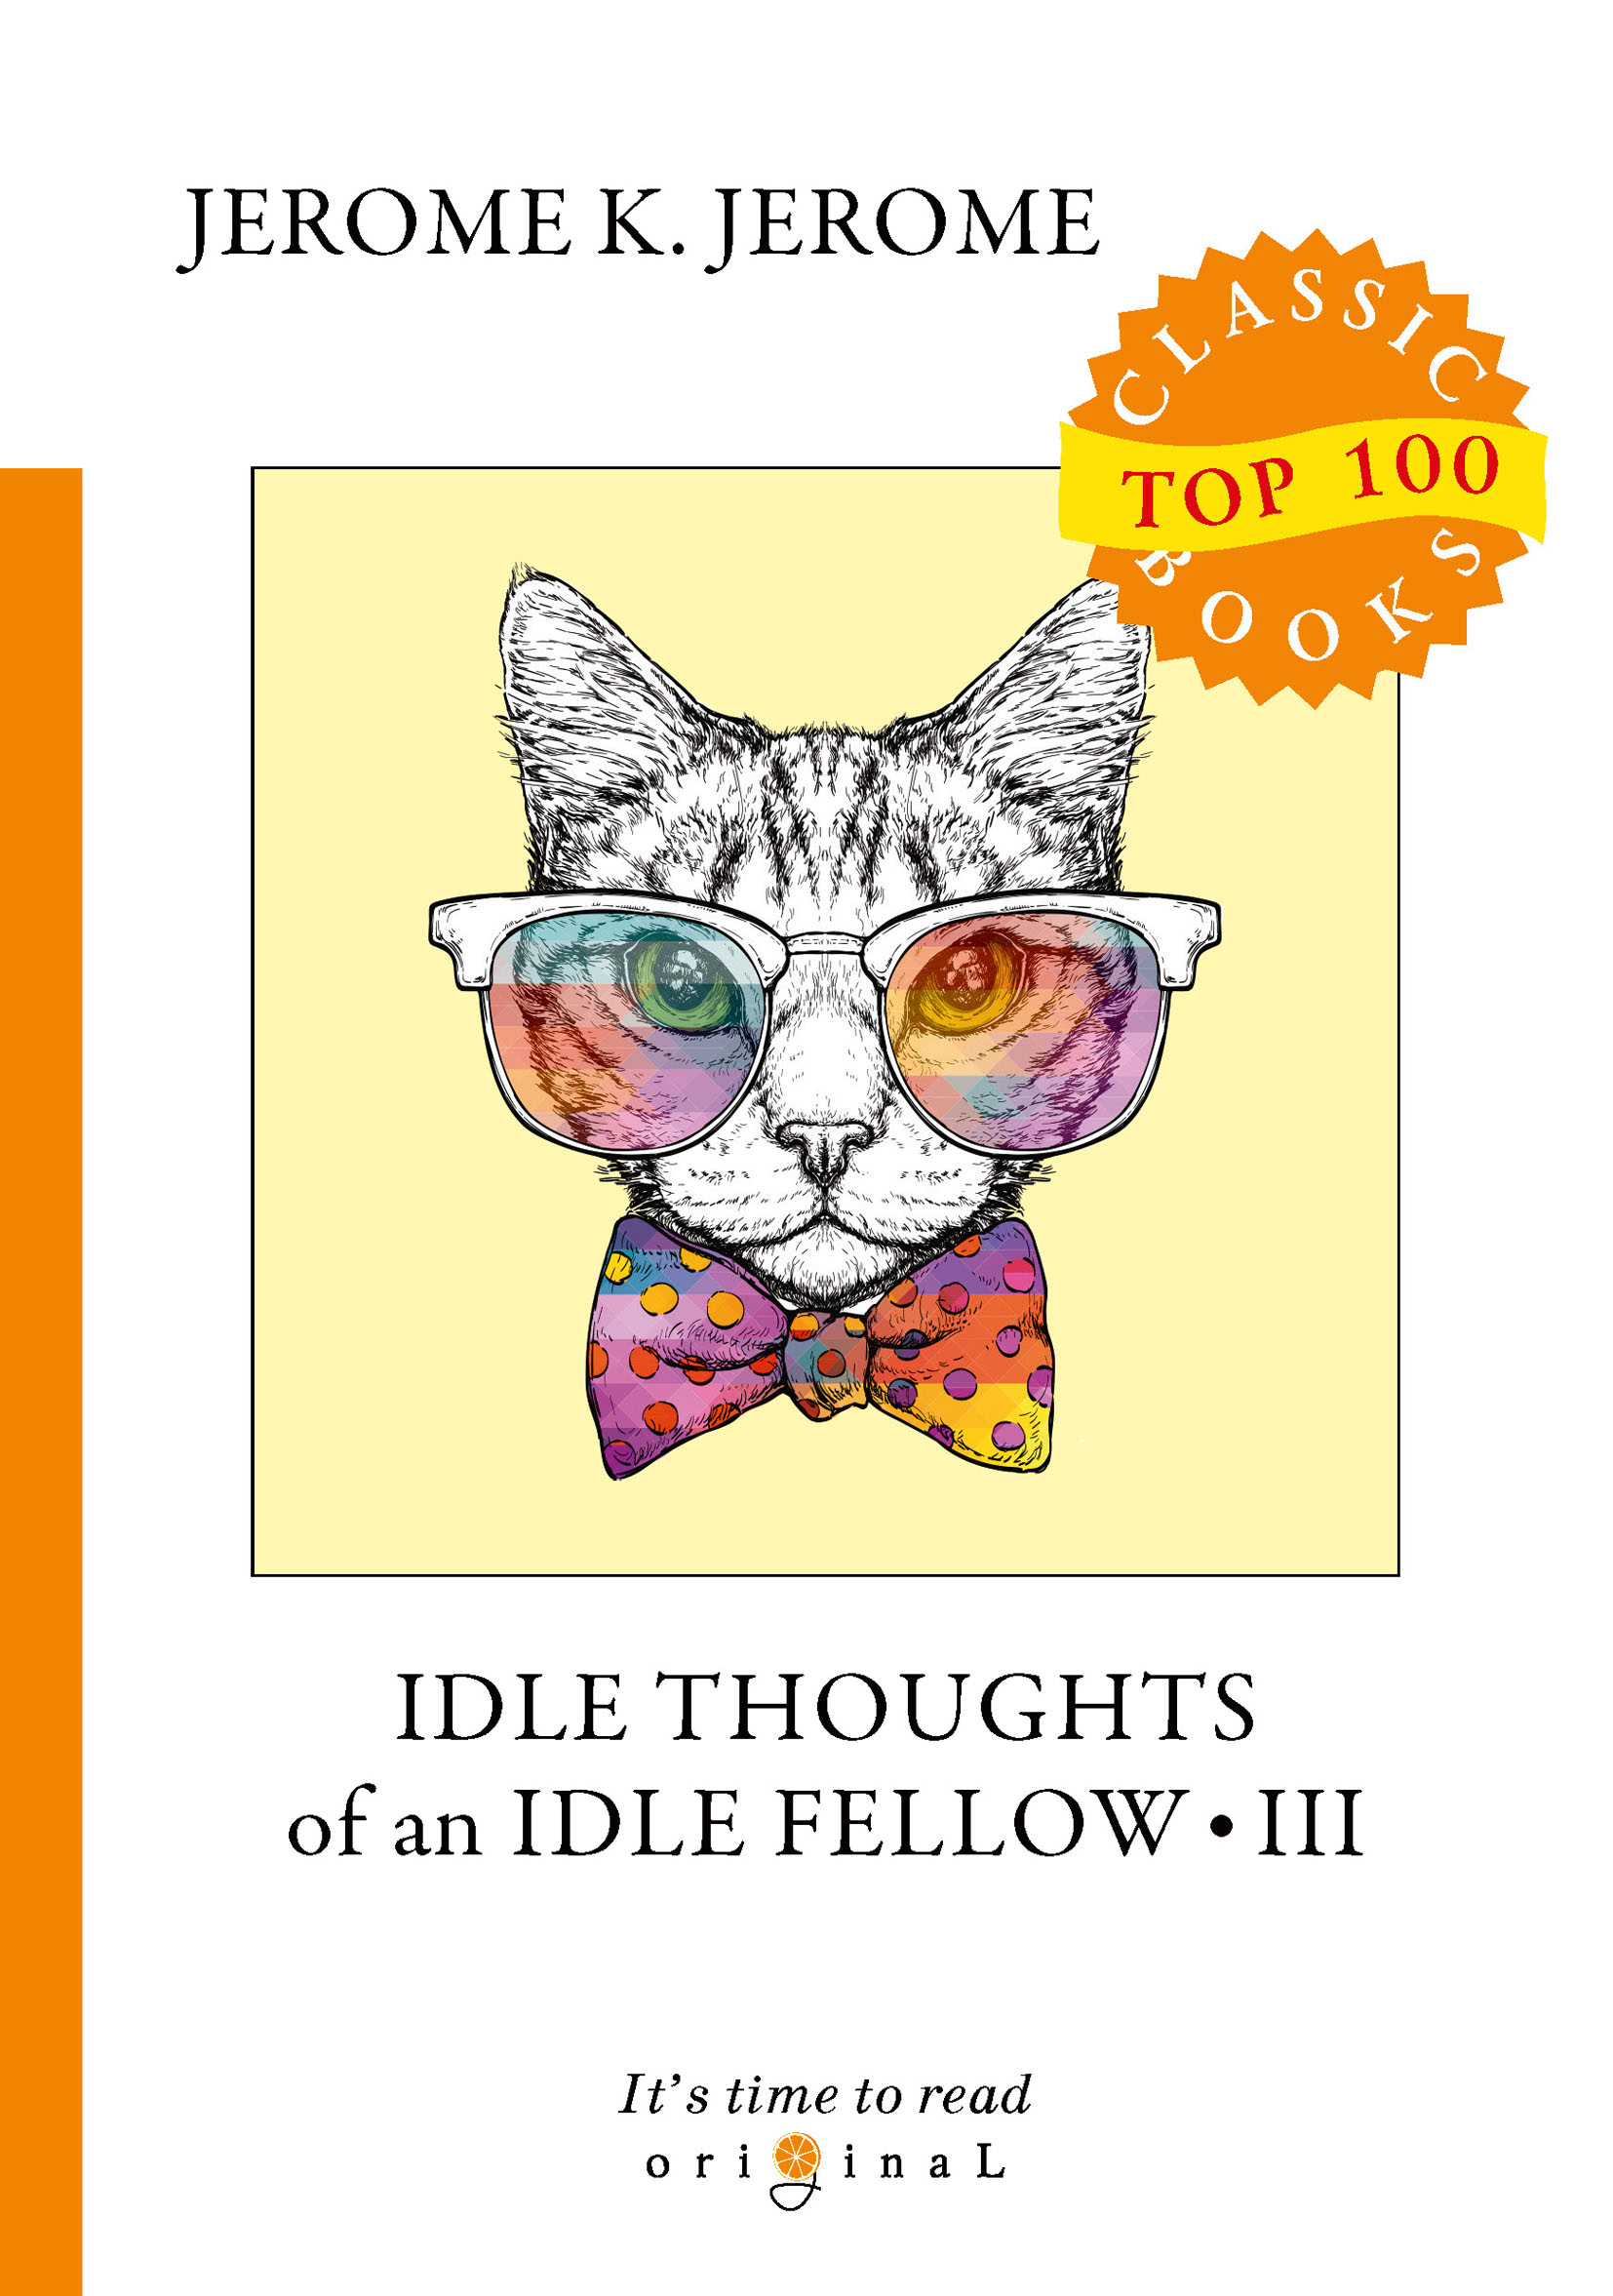 J. K. Jerome Idle Thoughts of an Idle Fellow III джером клапка джером the idle thoughts of an idle fellow